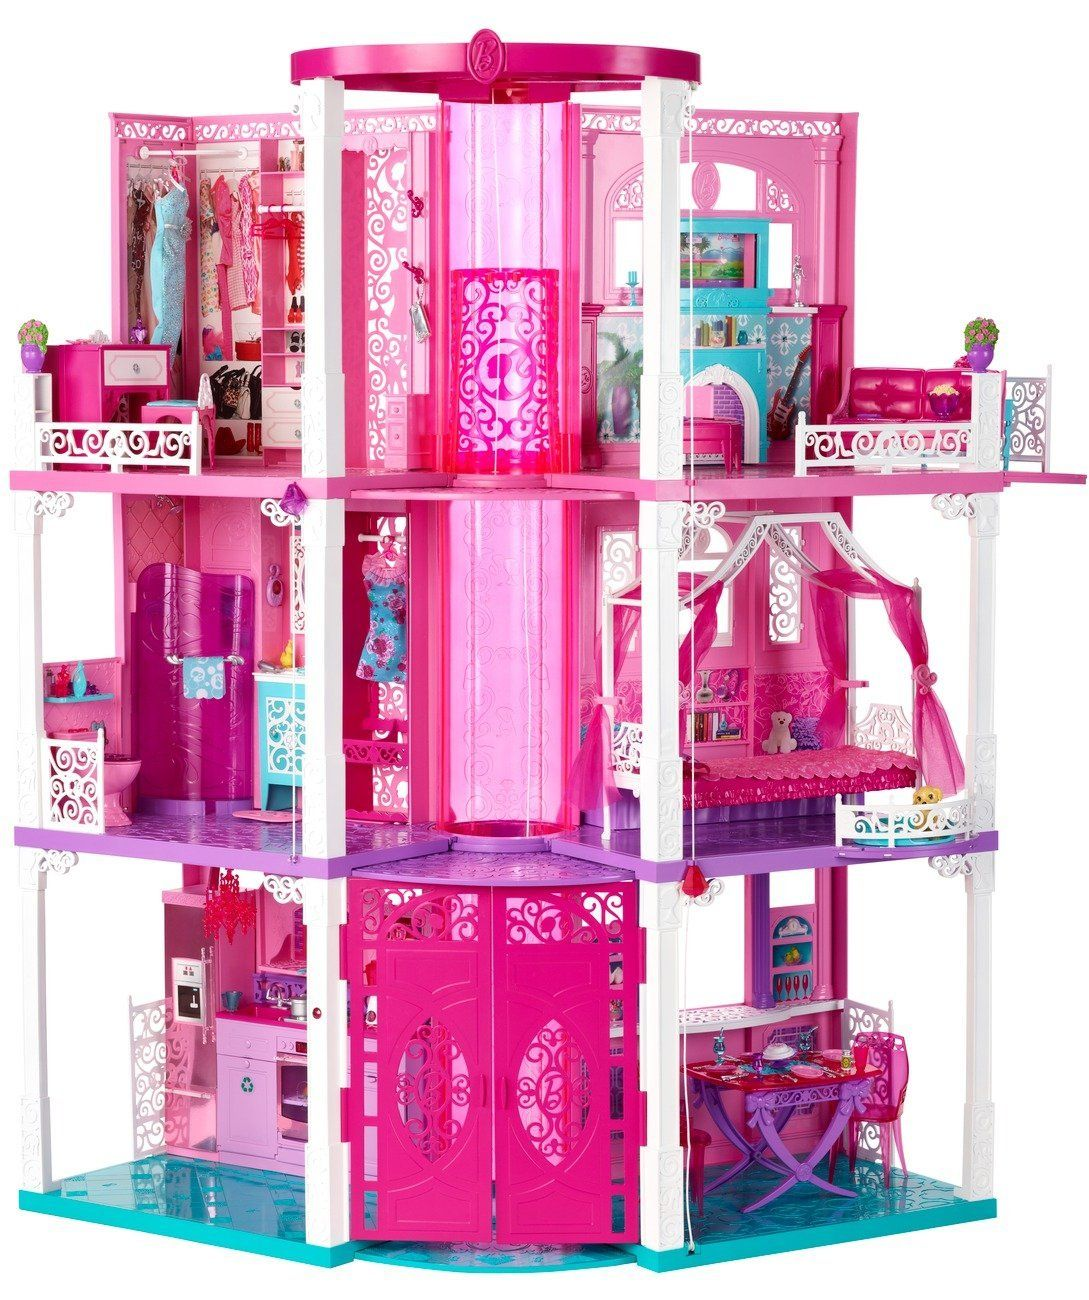 Barbie deluxe furniture stovetop to tabletop kitchen doll target - Barbie 3 Story Dream Dollhouse